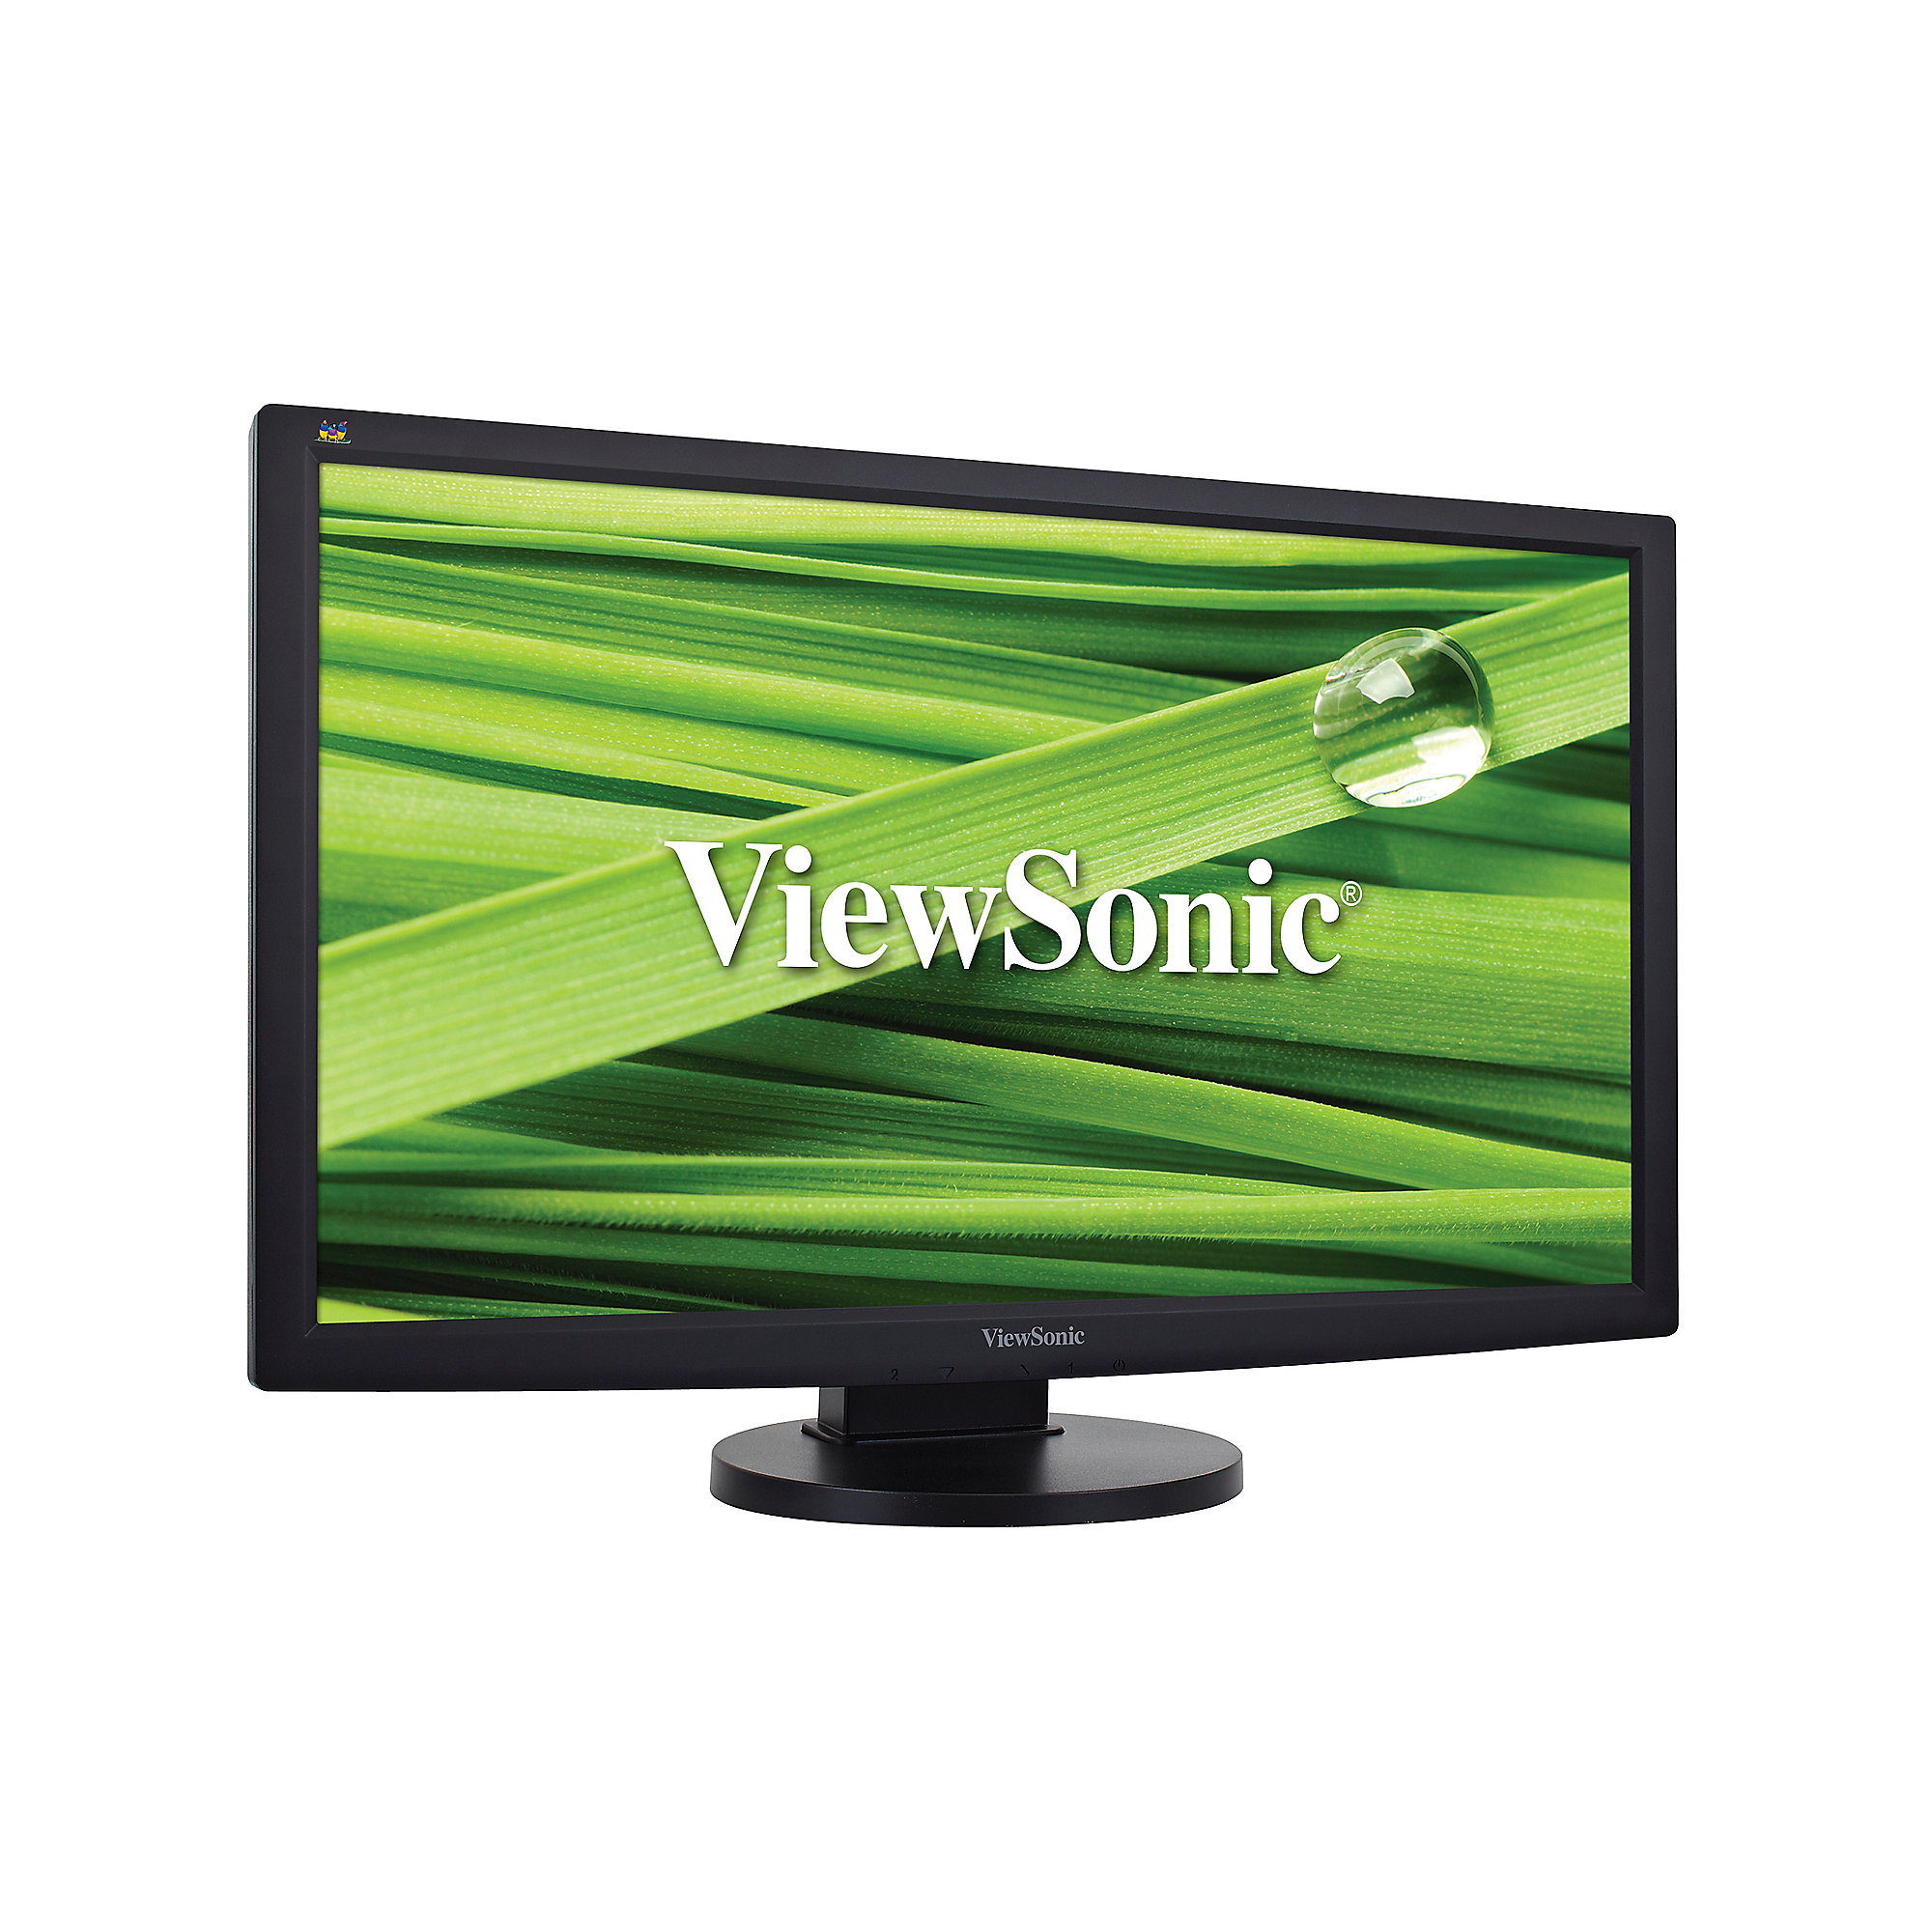 ViewSonic VG2433 59,9cm 24 Zoll 16:9 TN-LED VGA/DVI 5 ms 20Mio:1 hv Pivot